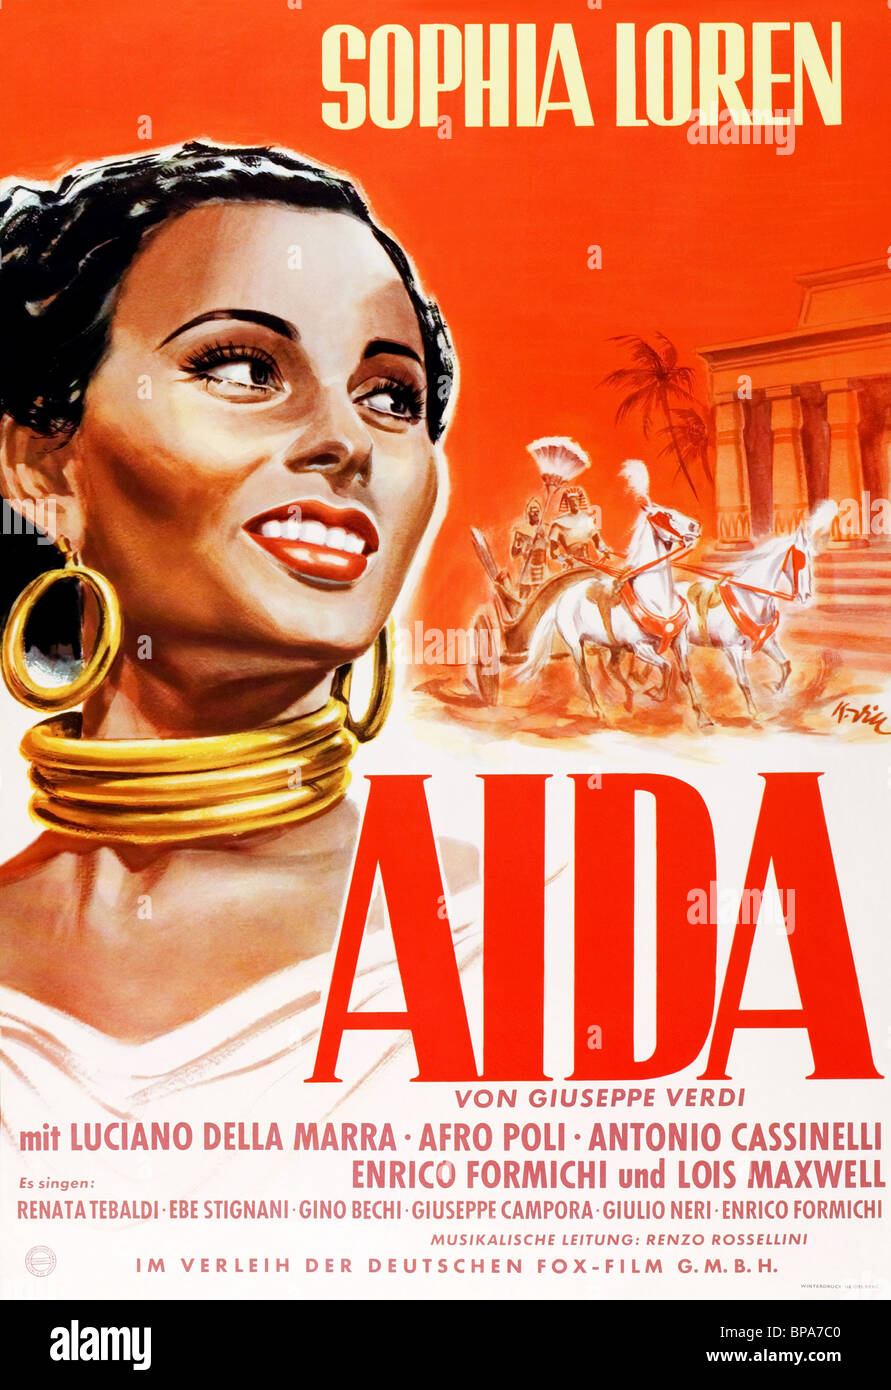 SOPHIA LOREN POSTER AIDA (1953) Stock Photo